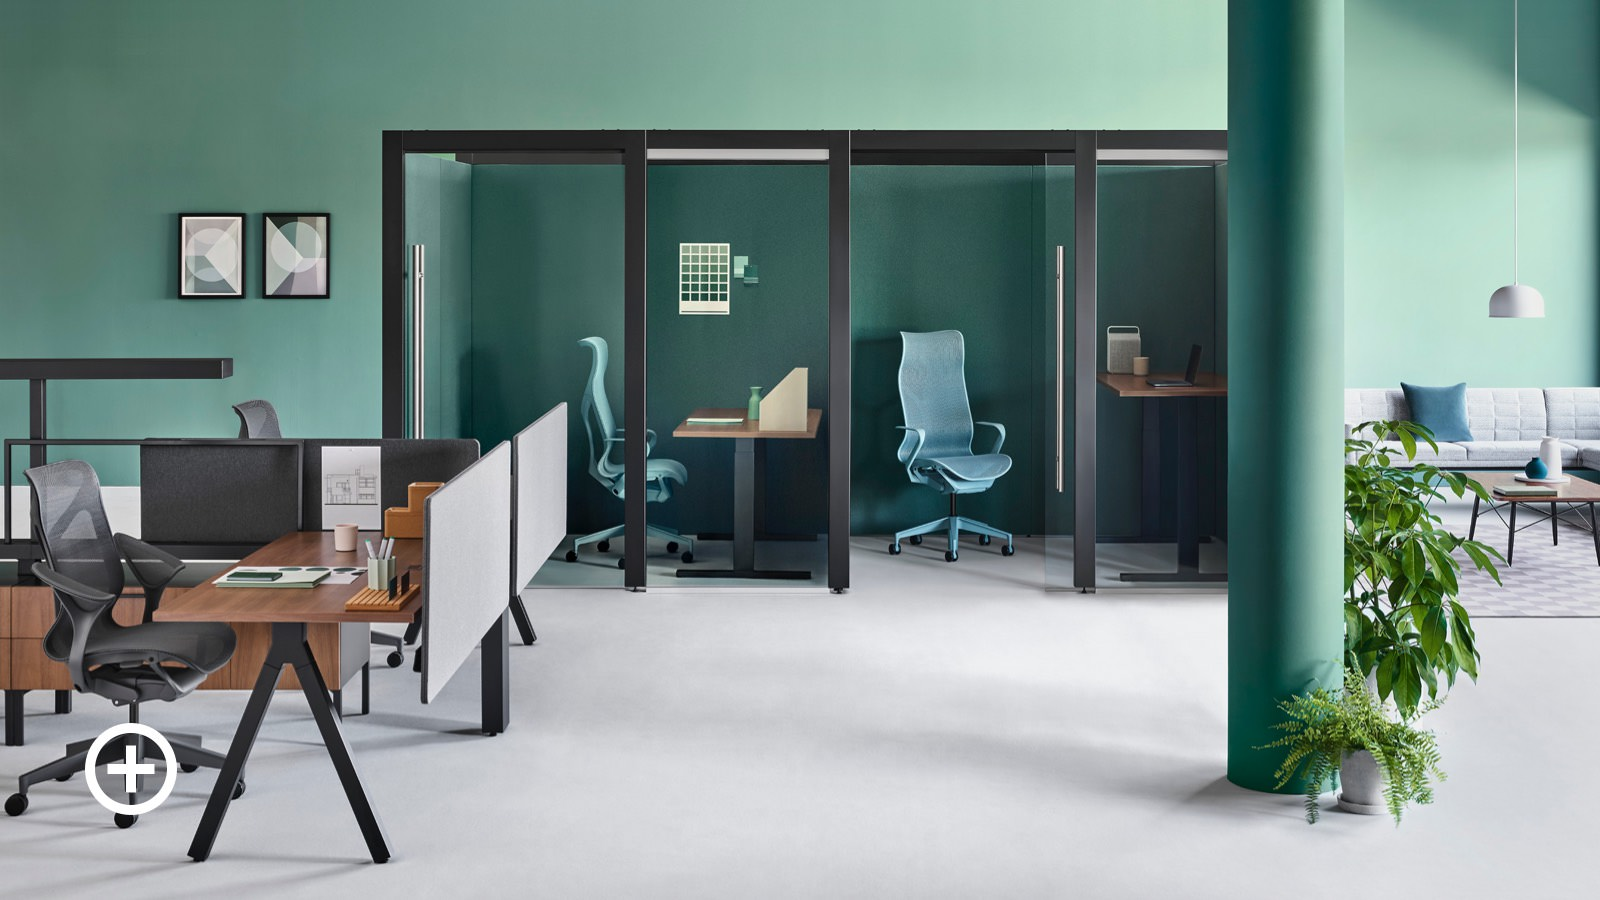 An office setting with two Overlay rooms containing Cosm office chairs and height-adjustable desks and Canvas Vista workstations nearby.